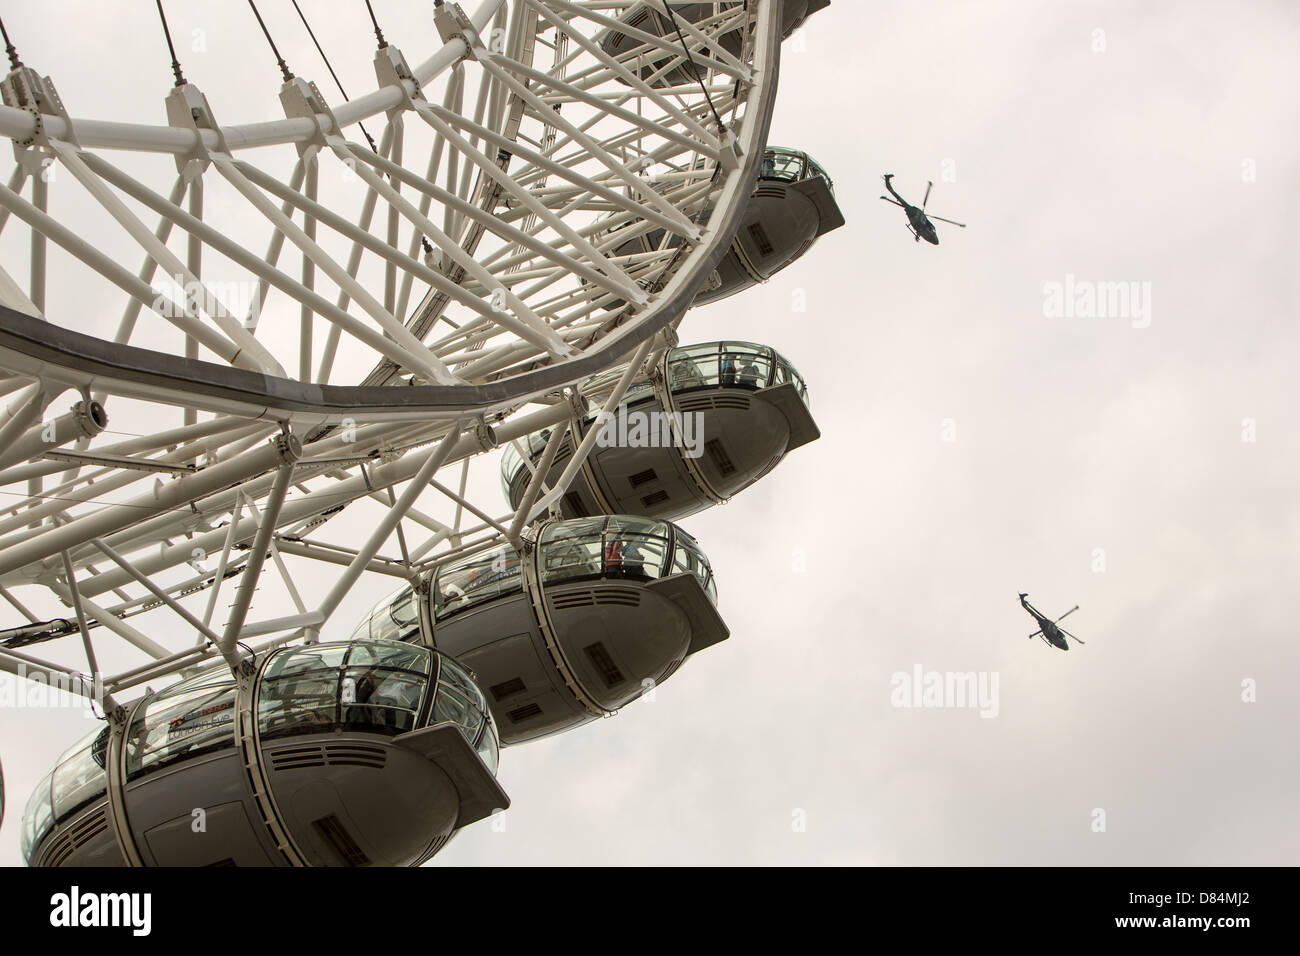 The London Eye, London, UK, with two helicopters flying past. - Stock Image